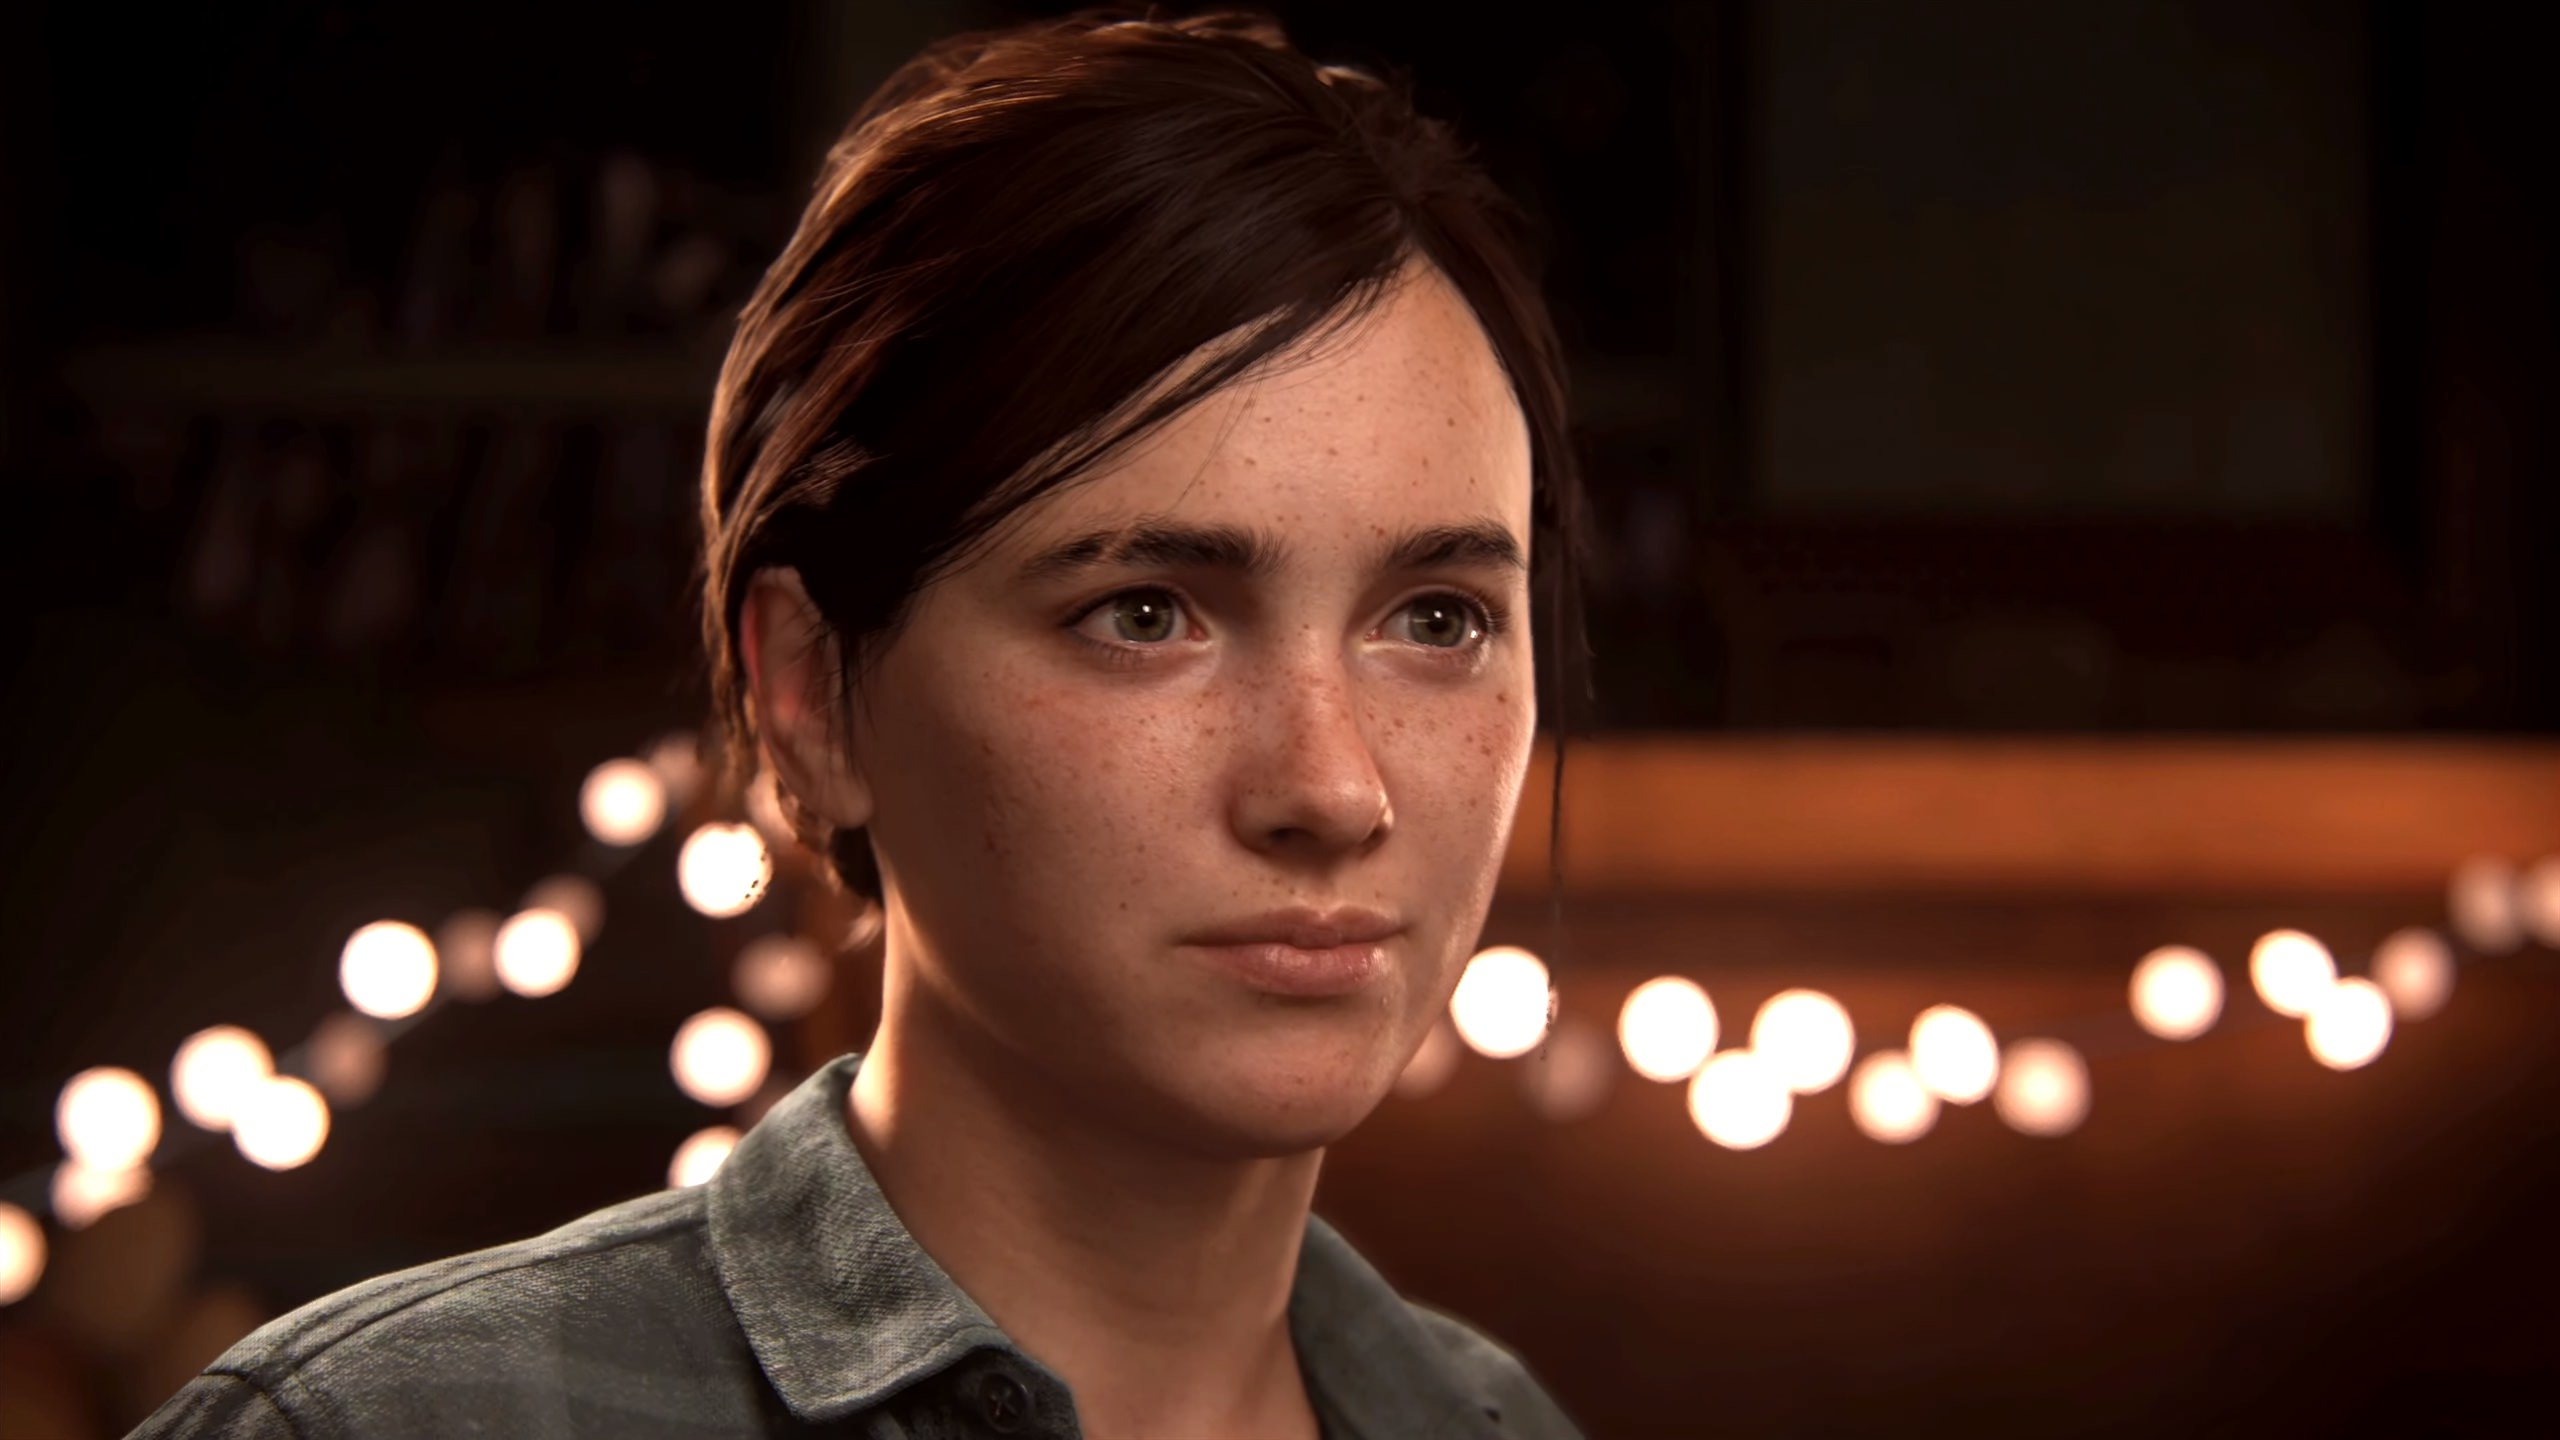 Sony @ E3 2018 – The Last of Us Part II, Death Stranding, Control and more